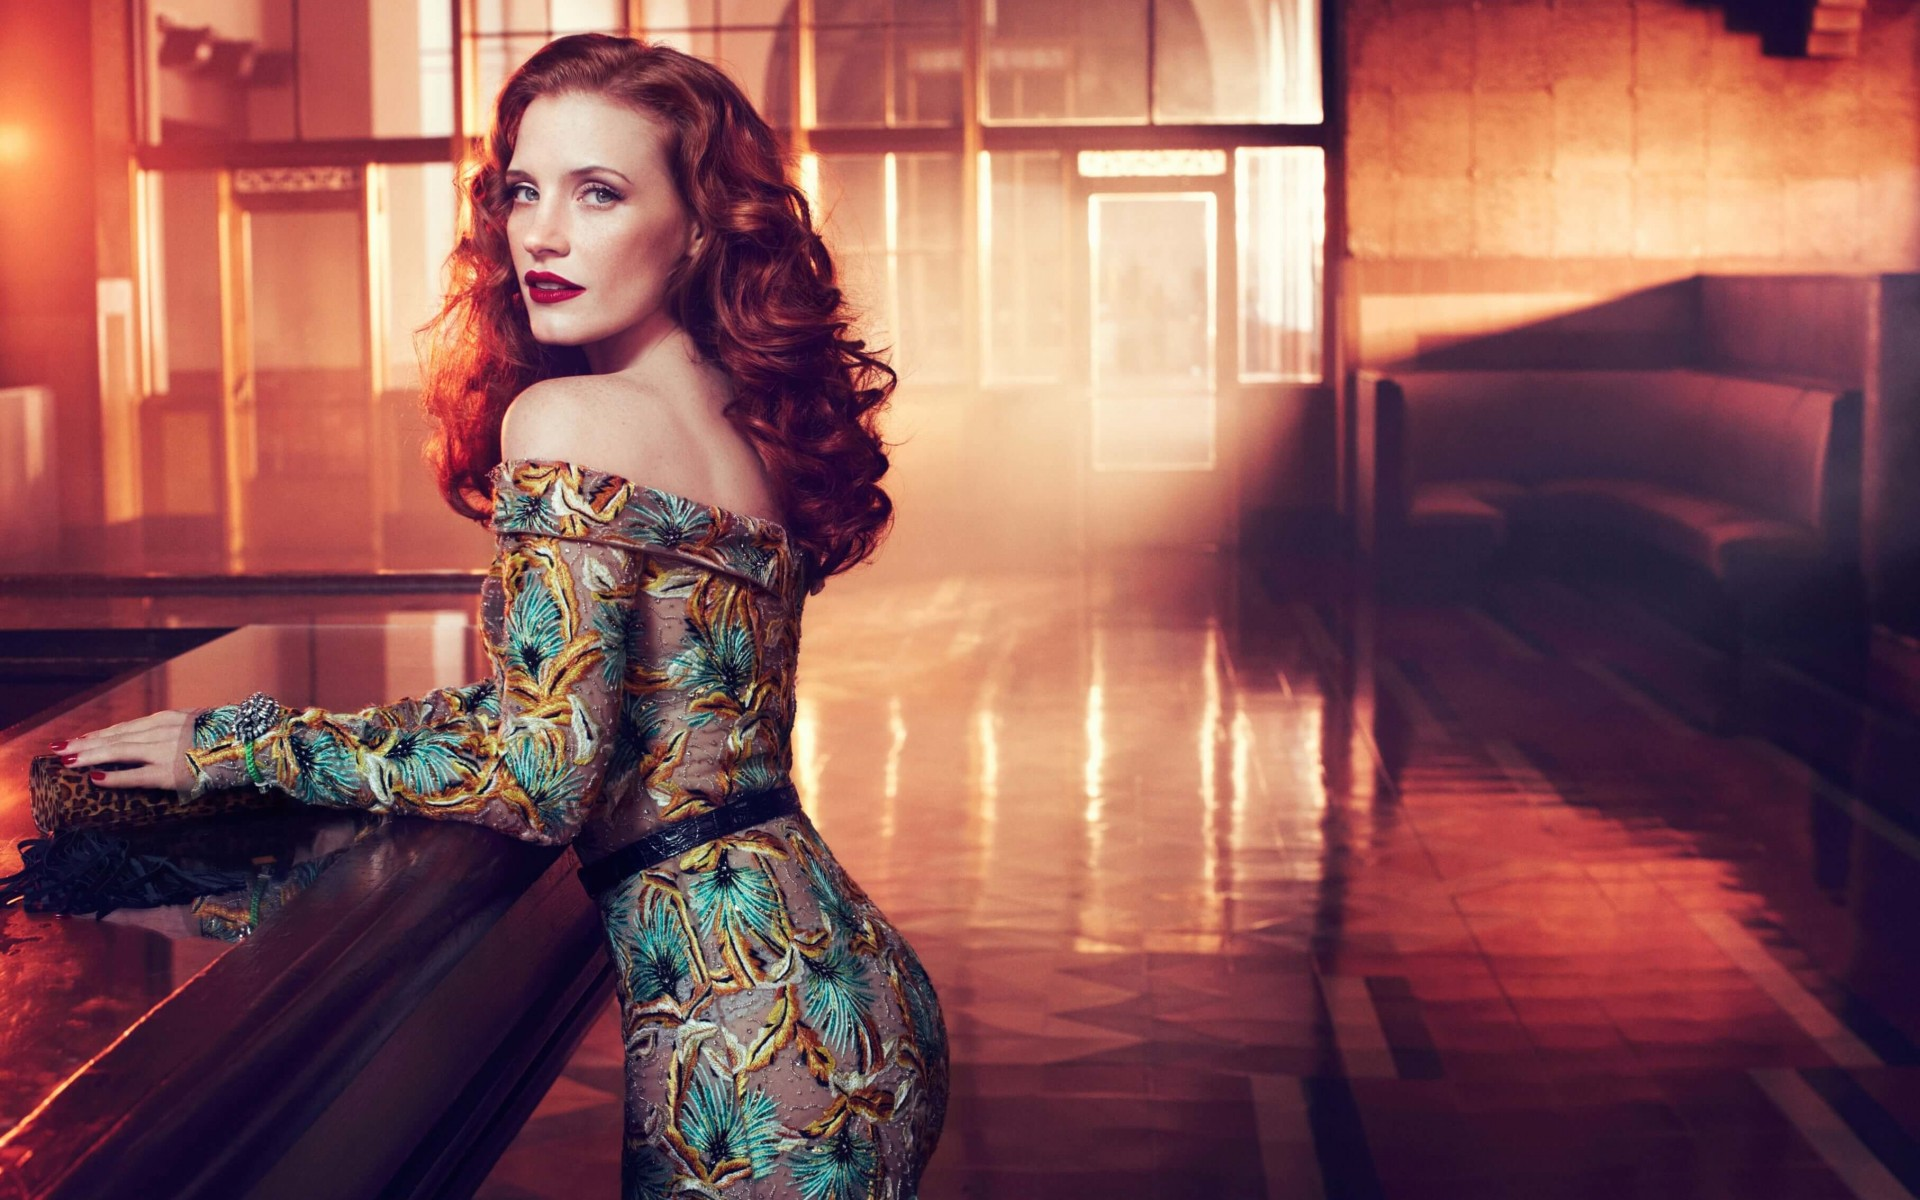 Jessica Chastain Wallpaper for Desktop 1920x1200